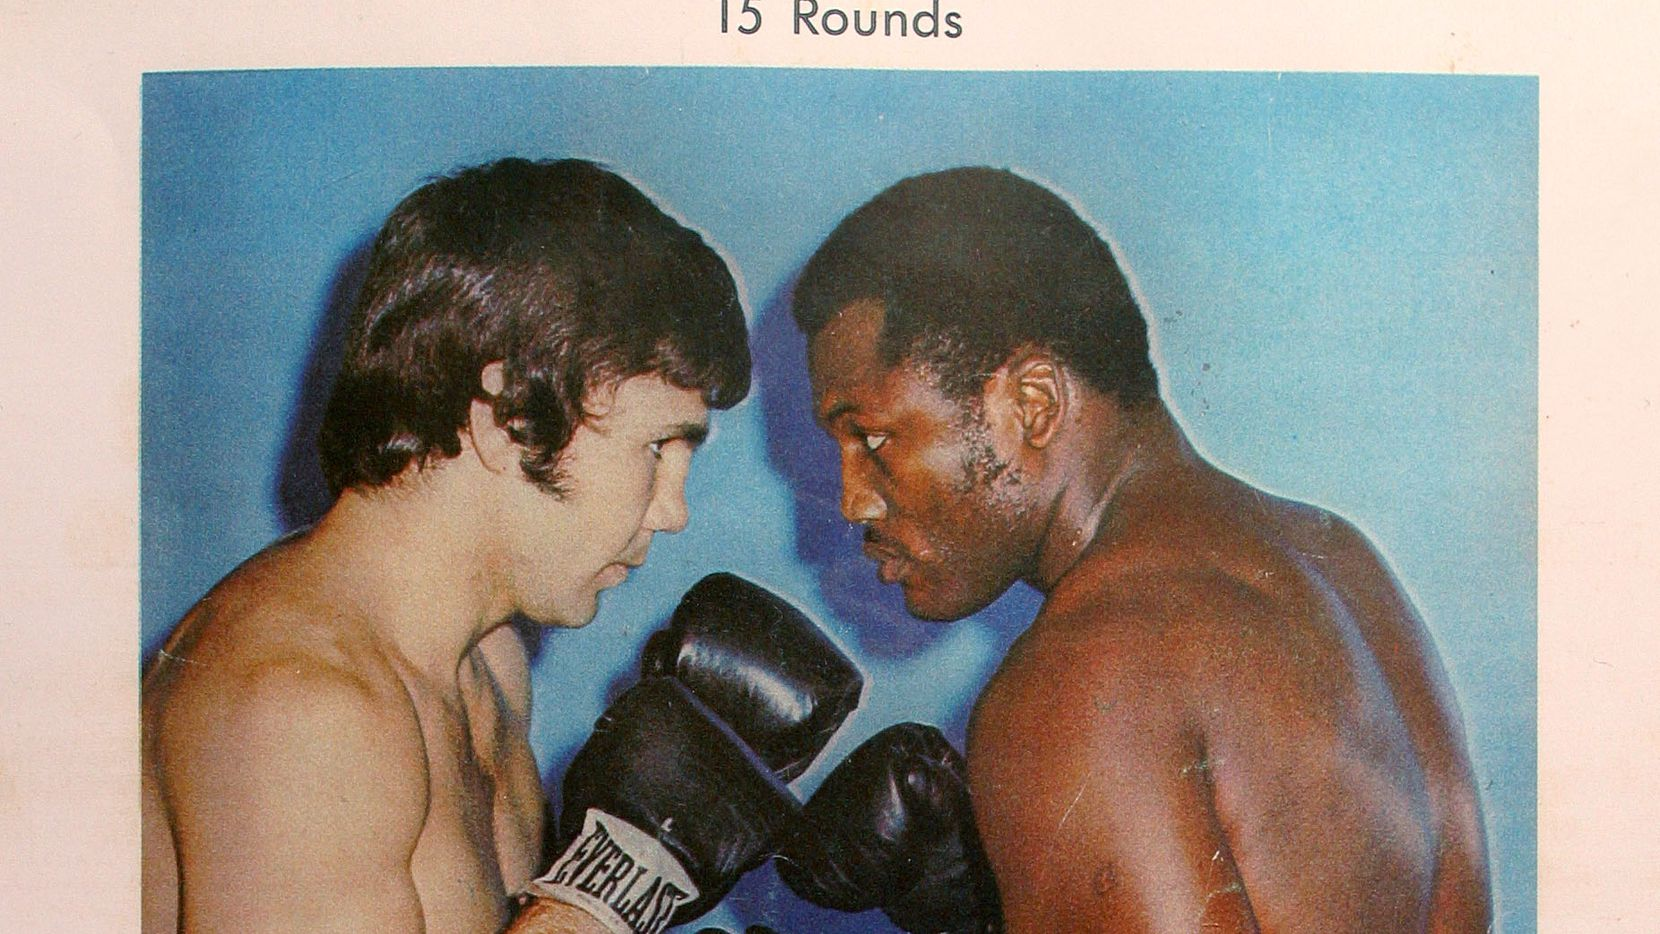 An undated archive promo photo of Terry Daniels vs Joe Frazier fight.